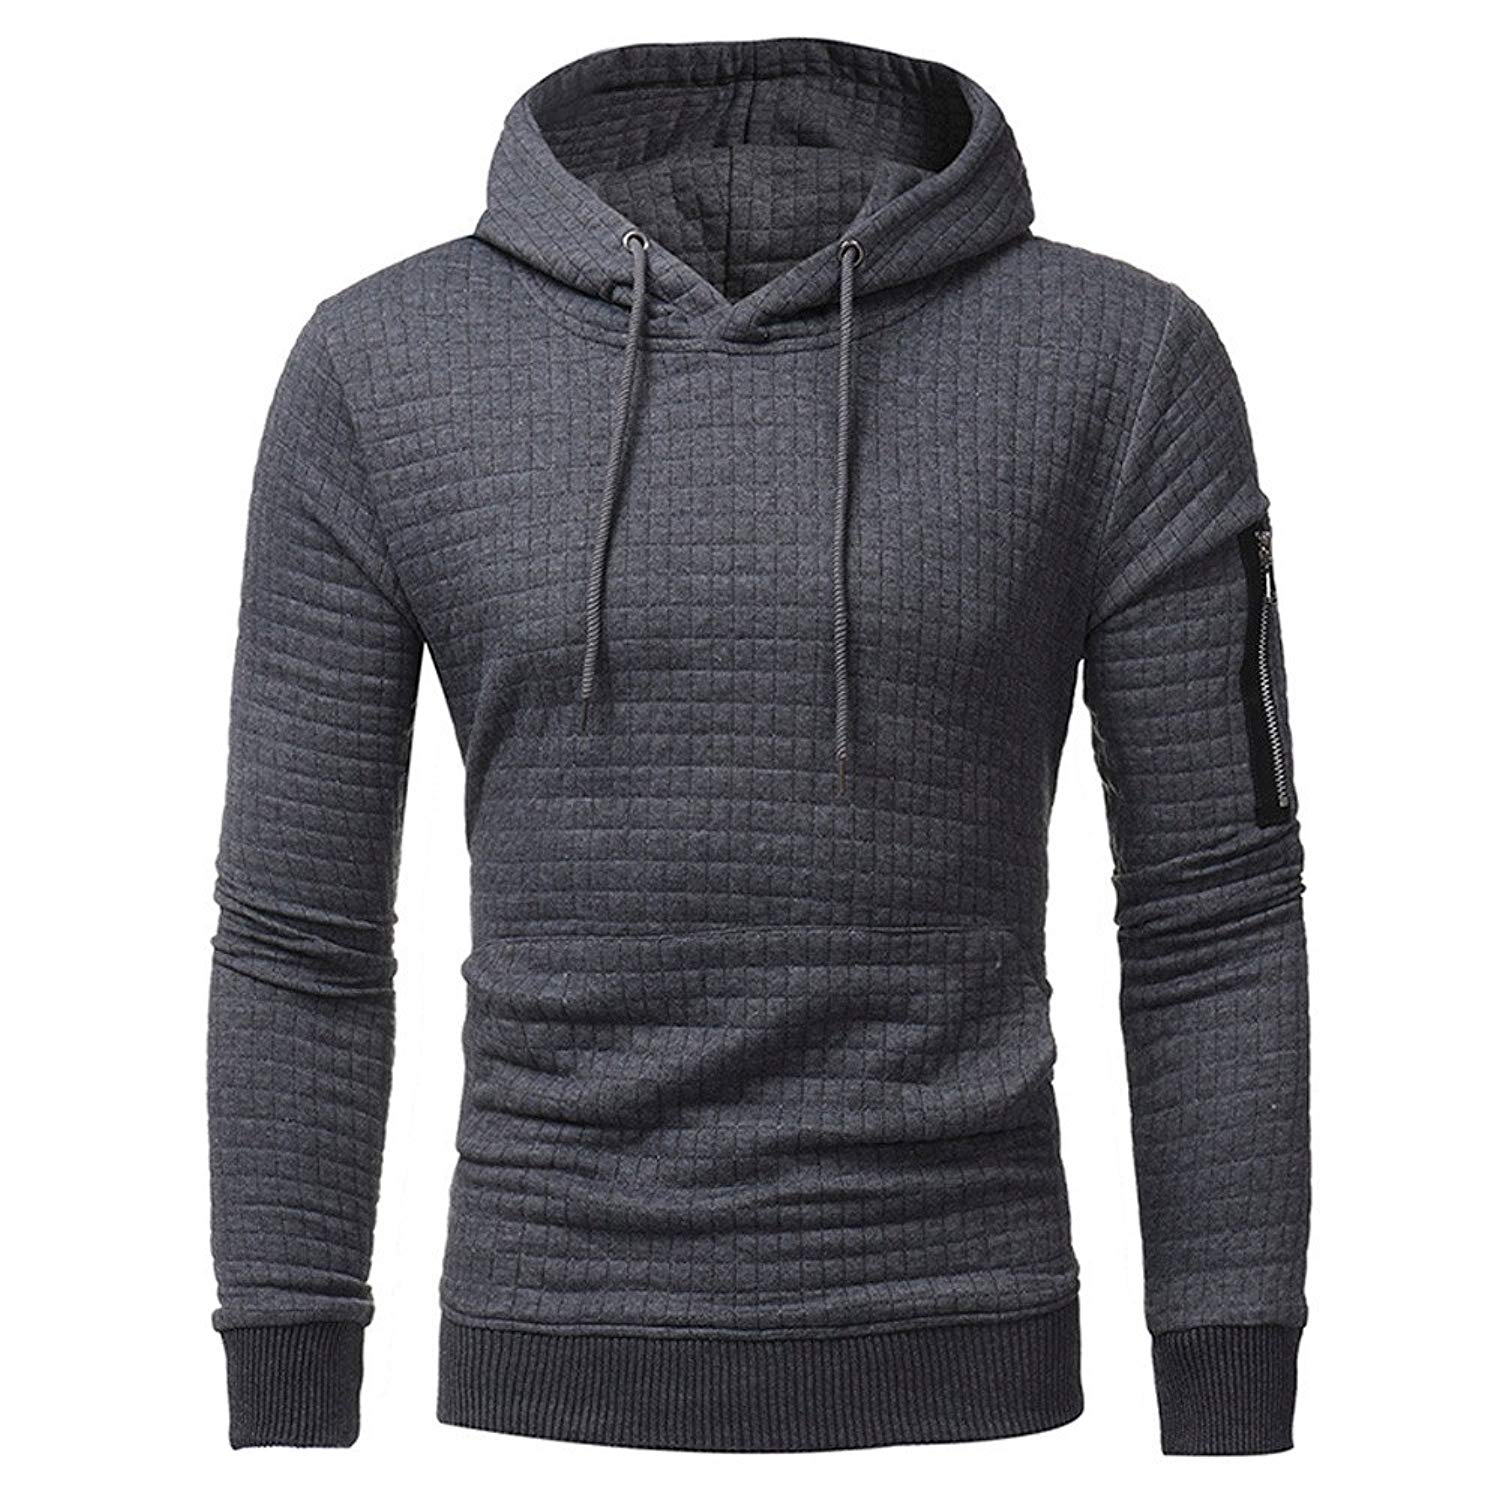 WSPLYSPJY Womens Boyfriend Relaxed Fit Hooded Casual Tops Hoodies Pullover Sweatshirts